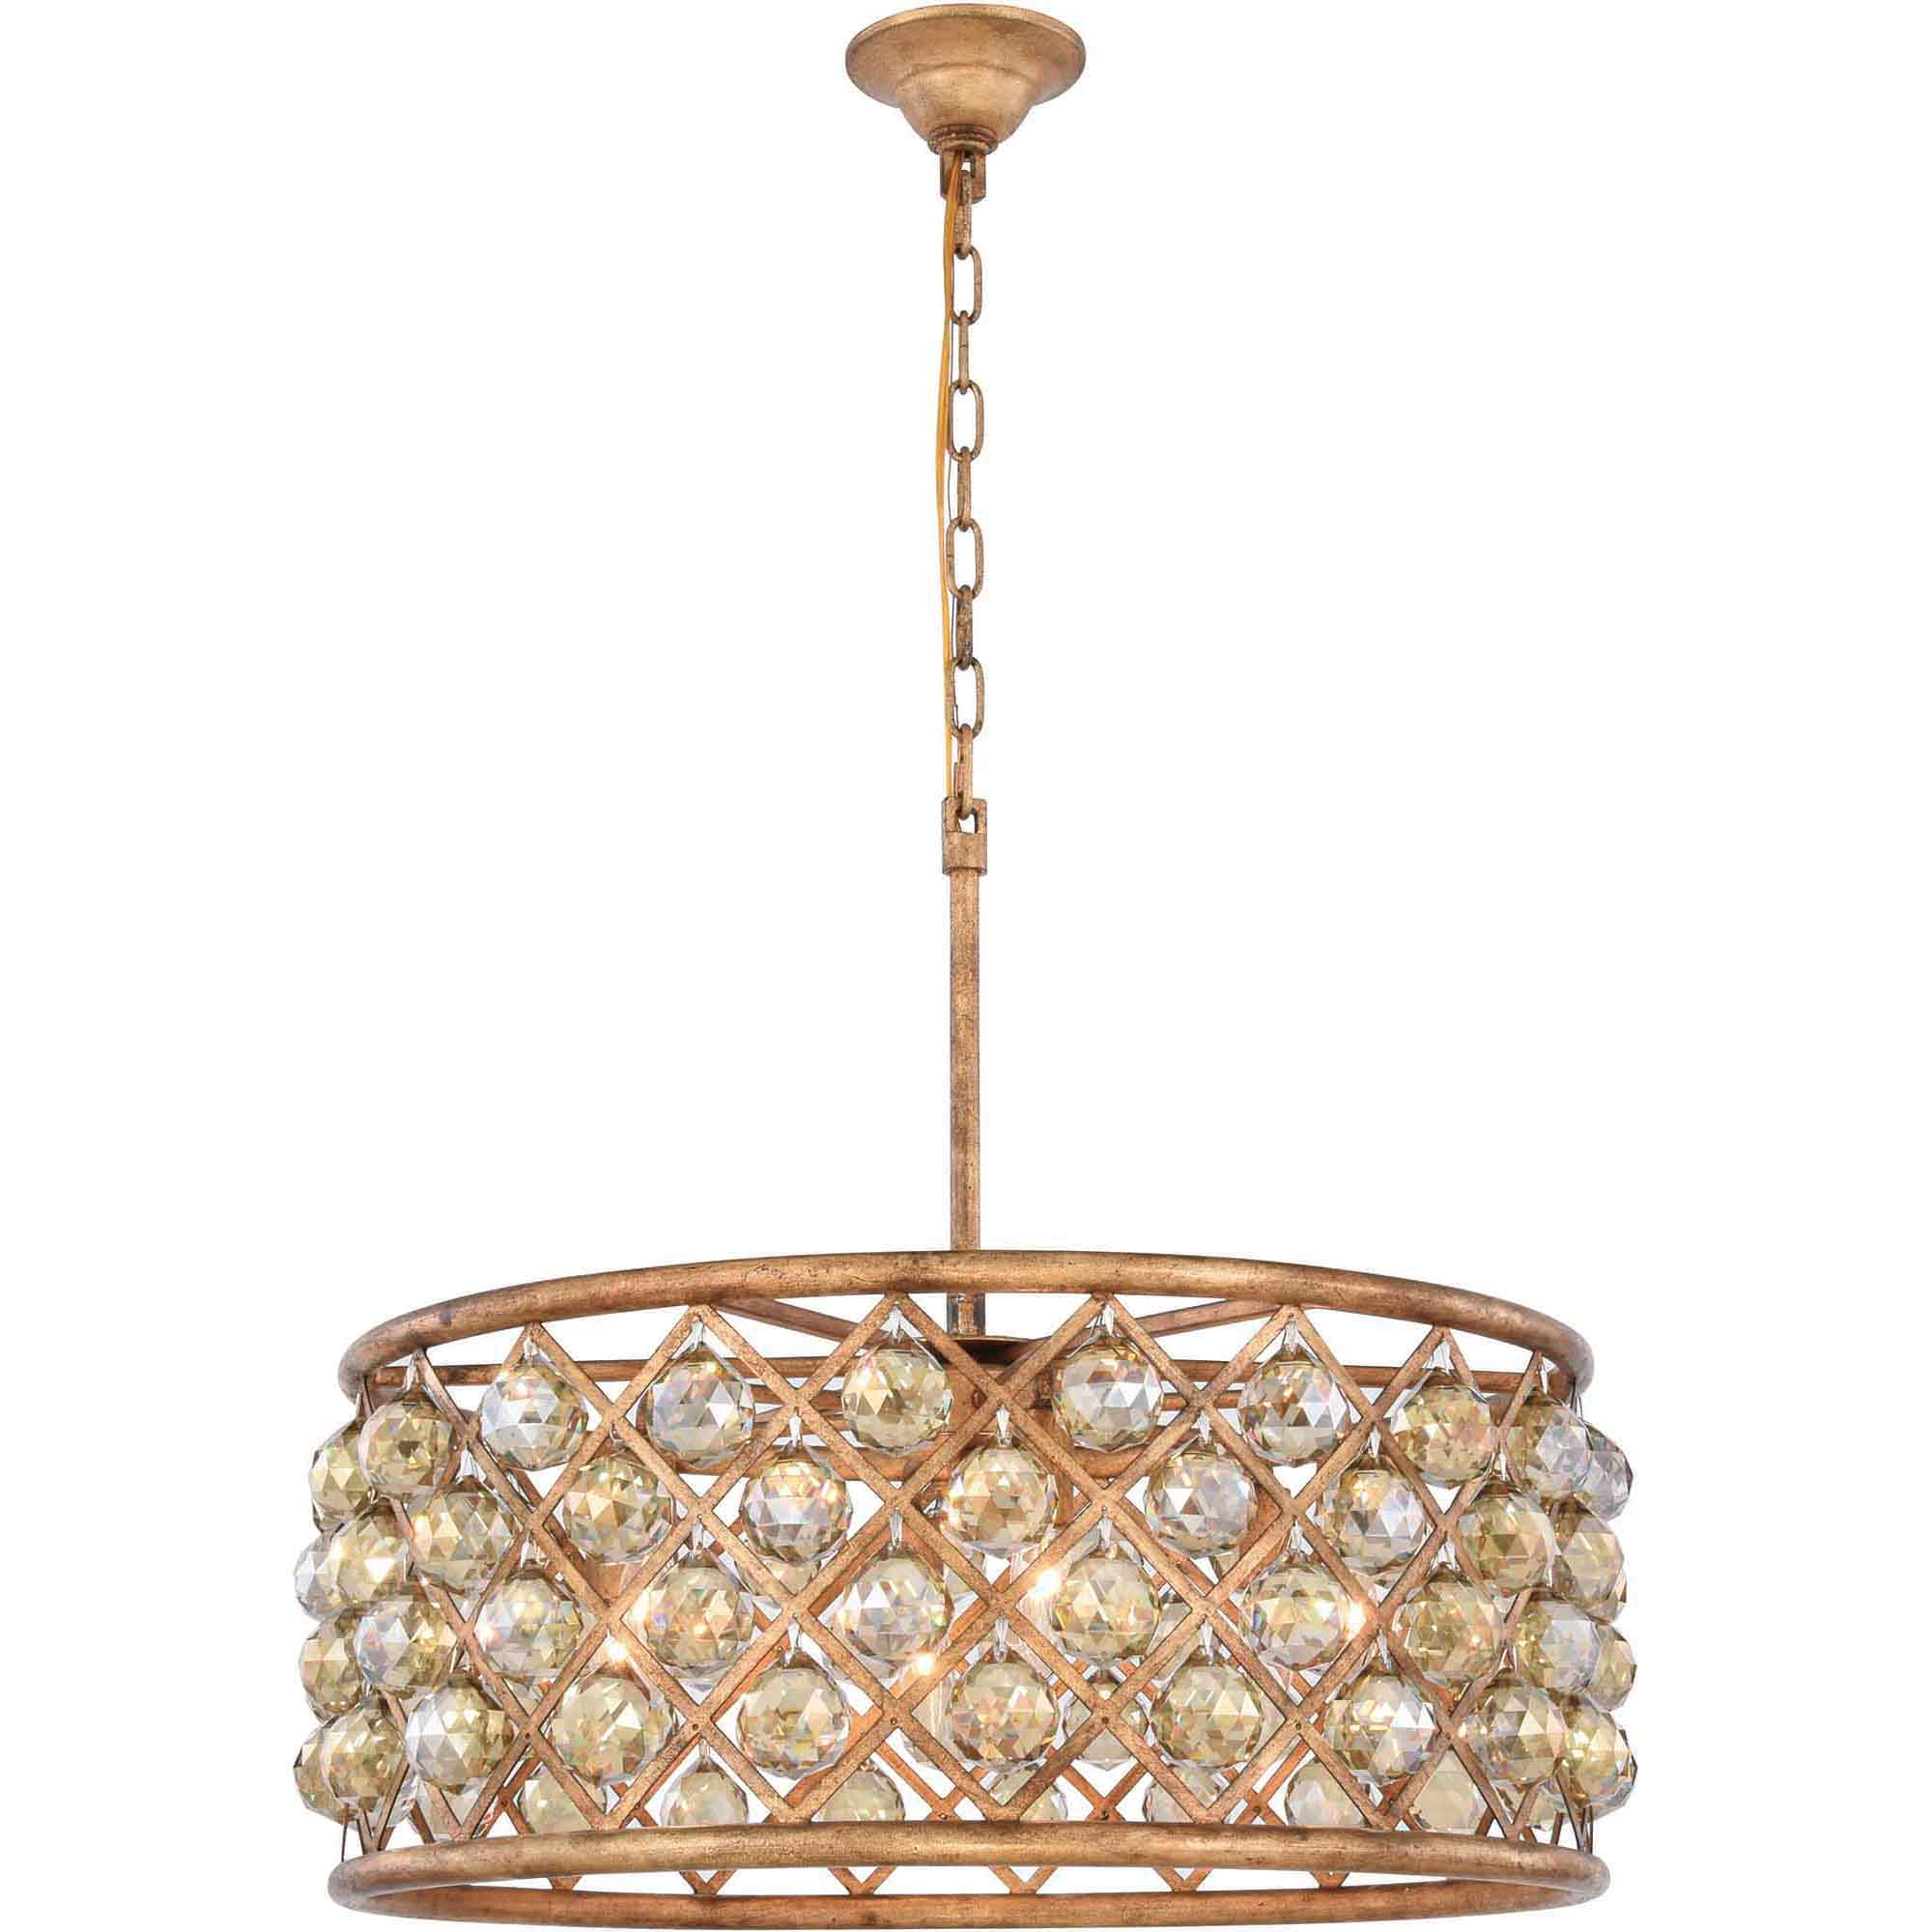 "Madison Collection Pendant Lamp D:25"" H:10.5"" Lt:6 Golden Iron Finish Royal Cut Golden Teak (Smoky)"